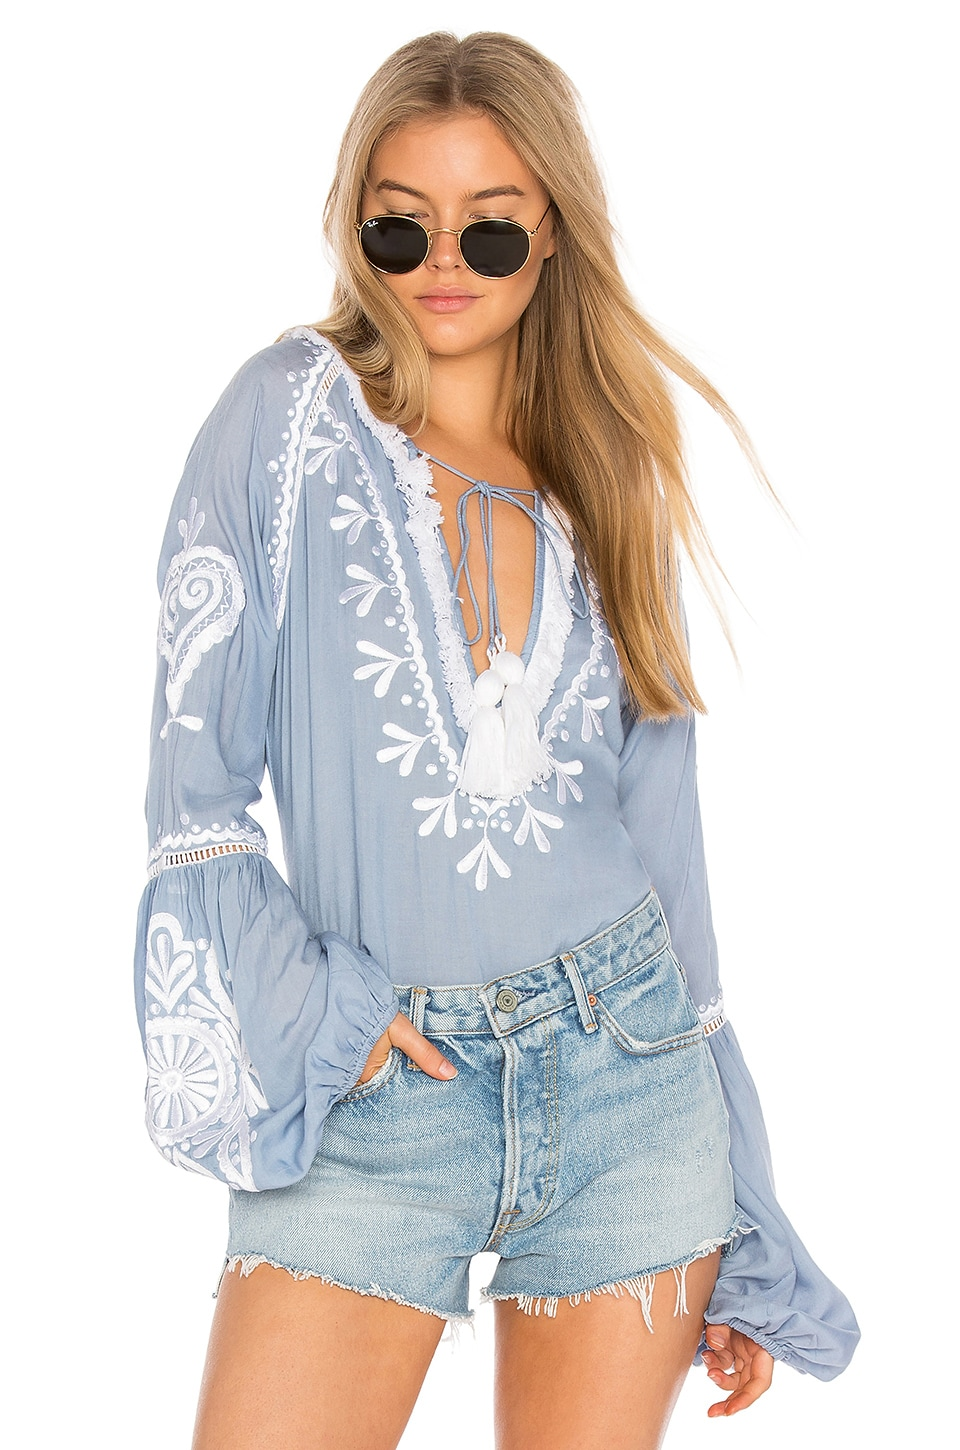 Karina Grimaldi Tom Embroidered Top in Chambre